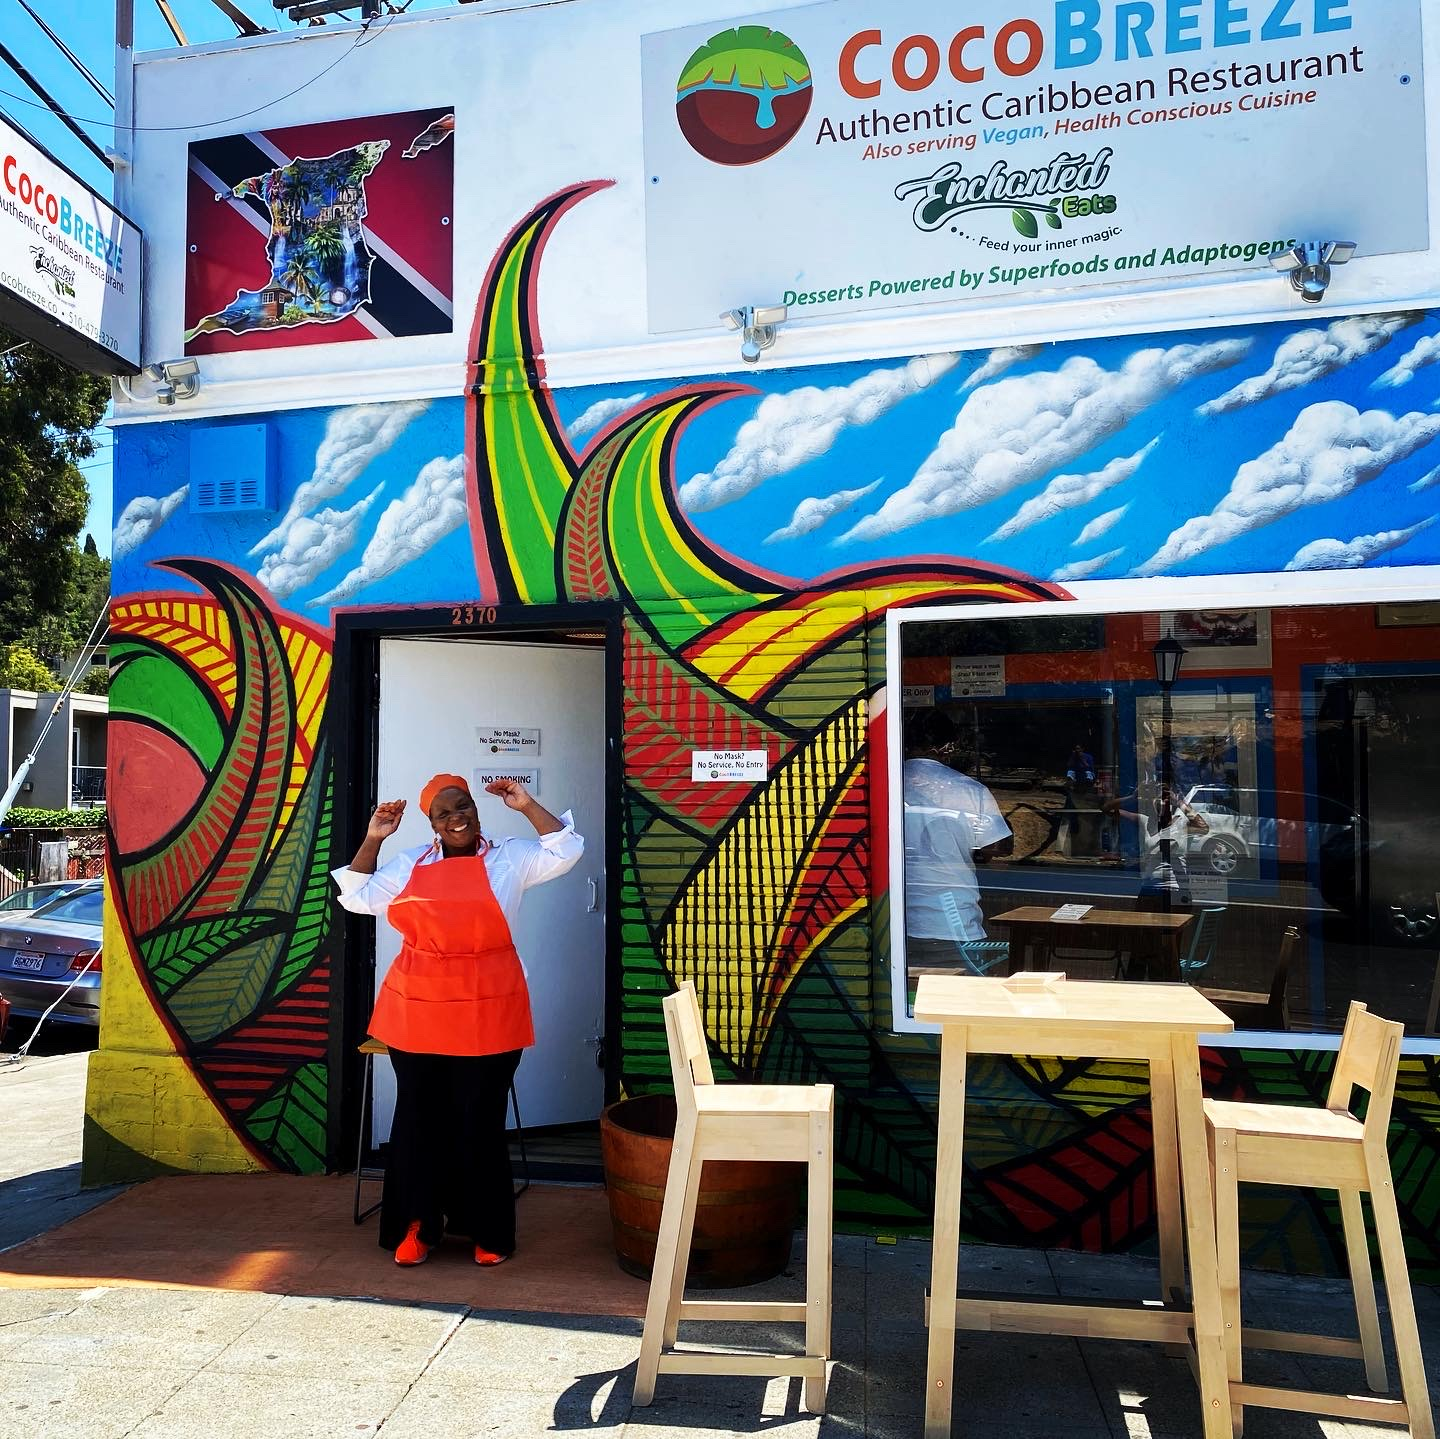 The chef stands in front of the restaurant, whose facade is decorated with a colorful tropical mural, with her arms raised in triumph